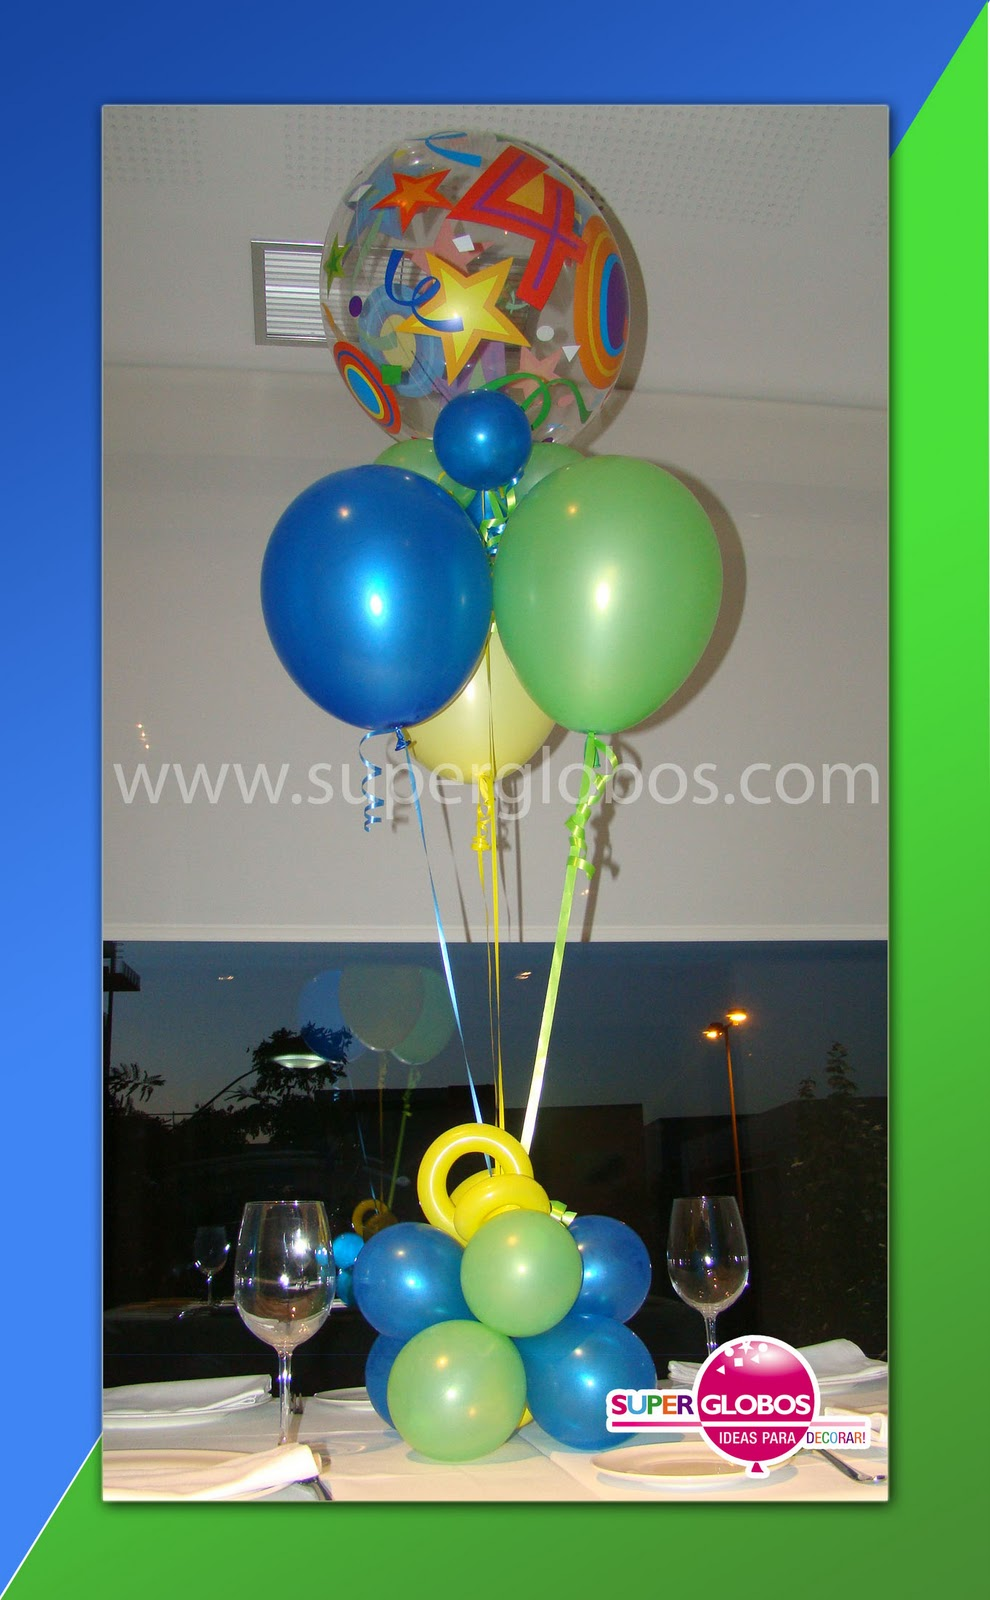 Decoraci n con globos para eventos y fiestas superglobos for Decoracion con globos